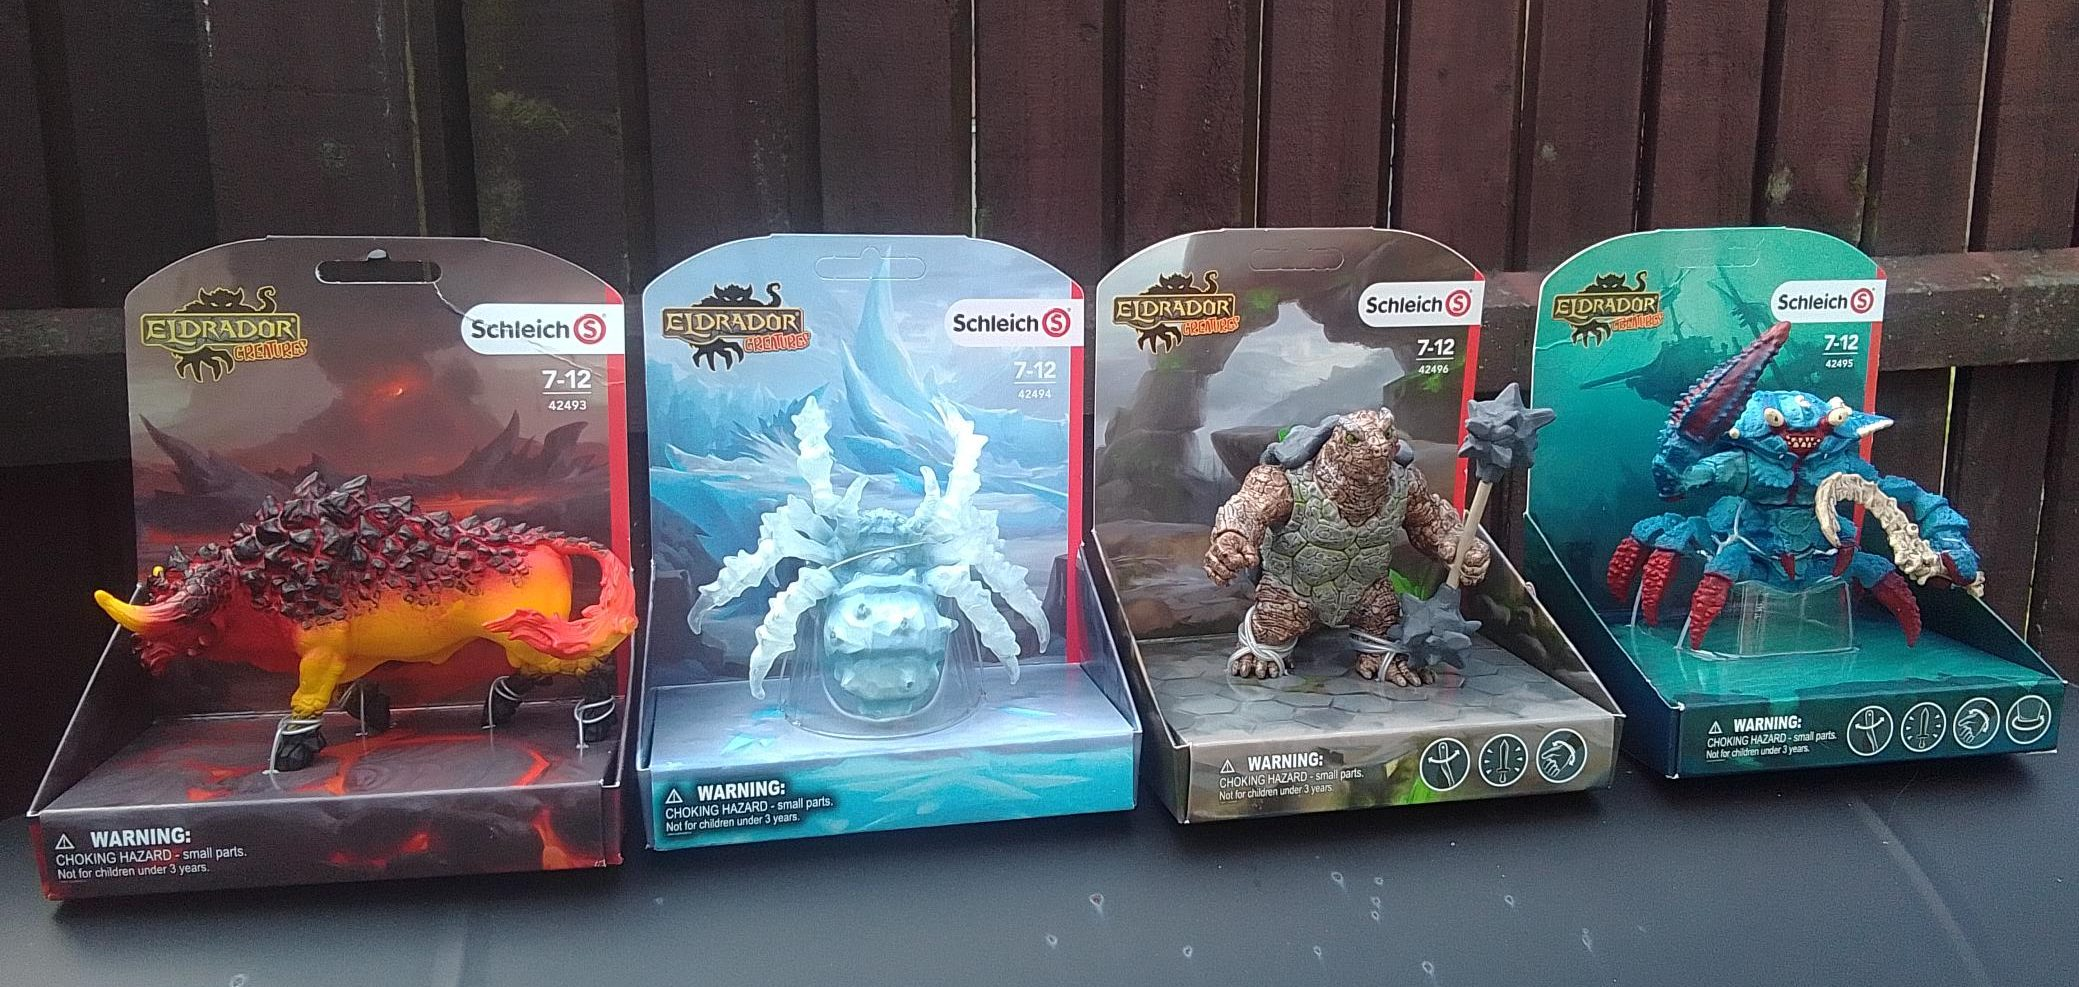 Schleich Eldrador review by Family Clan